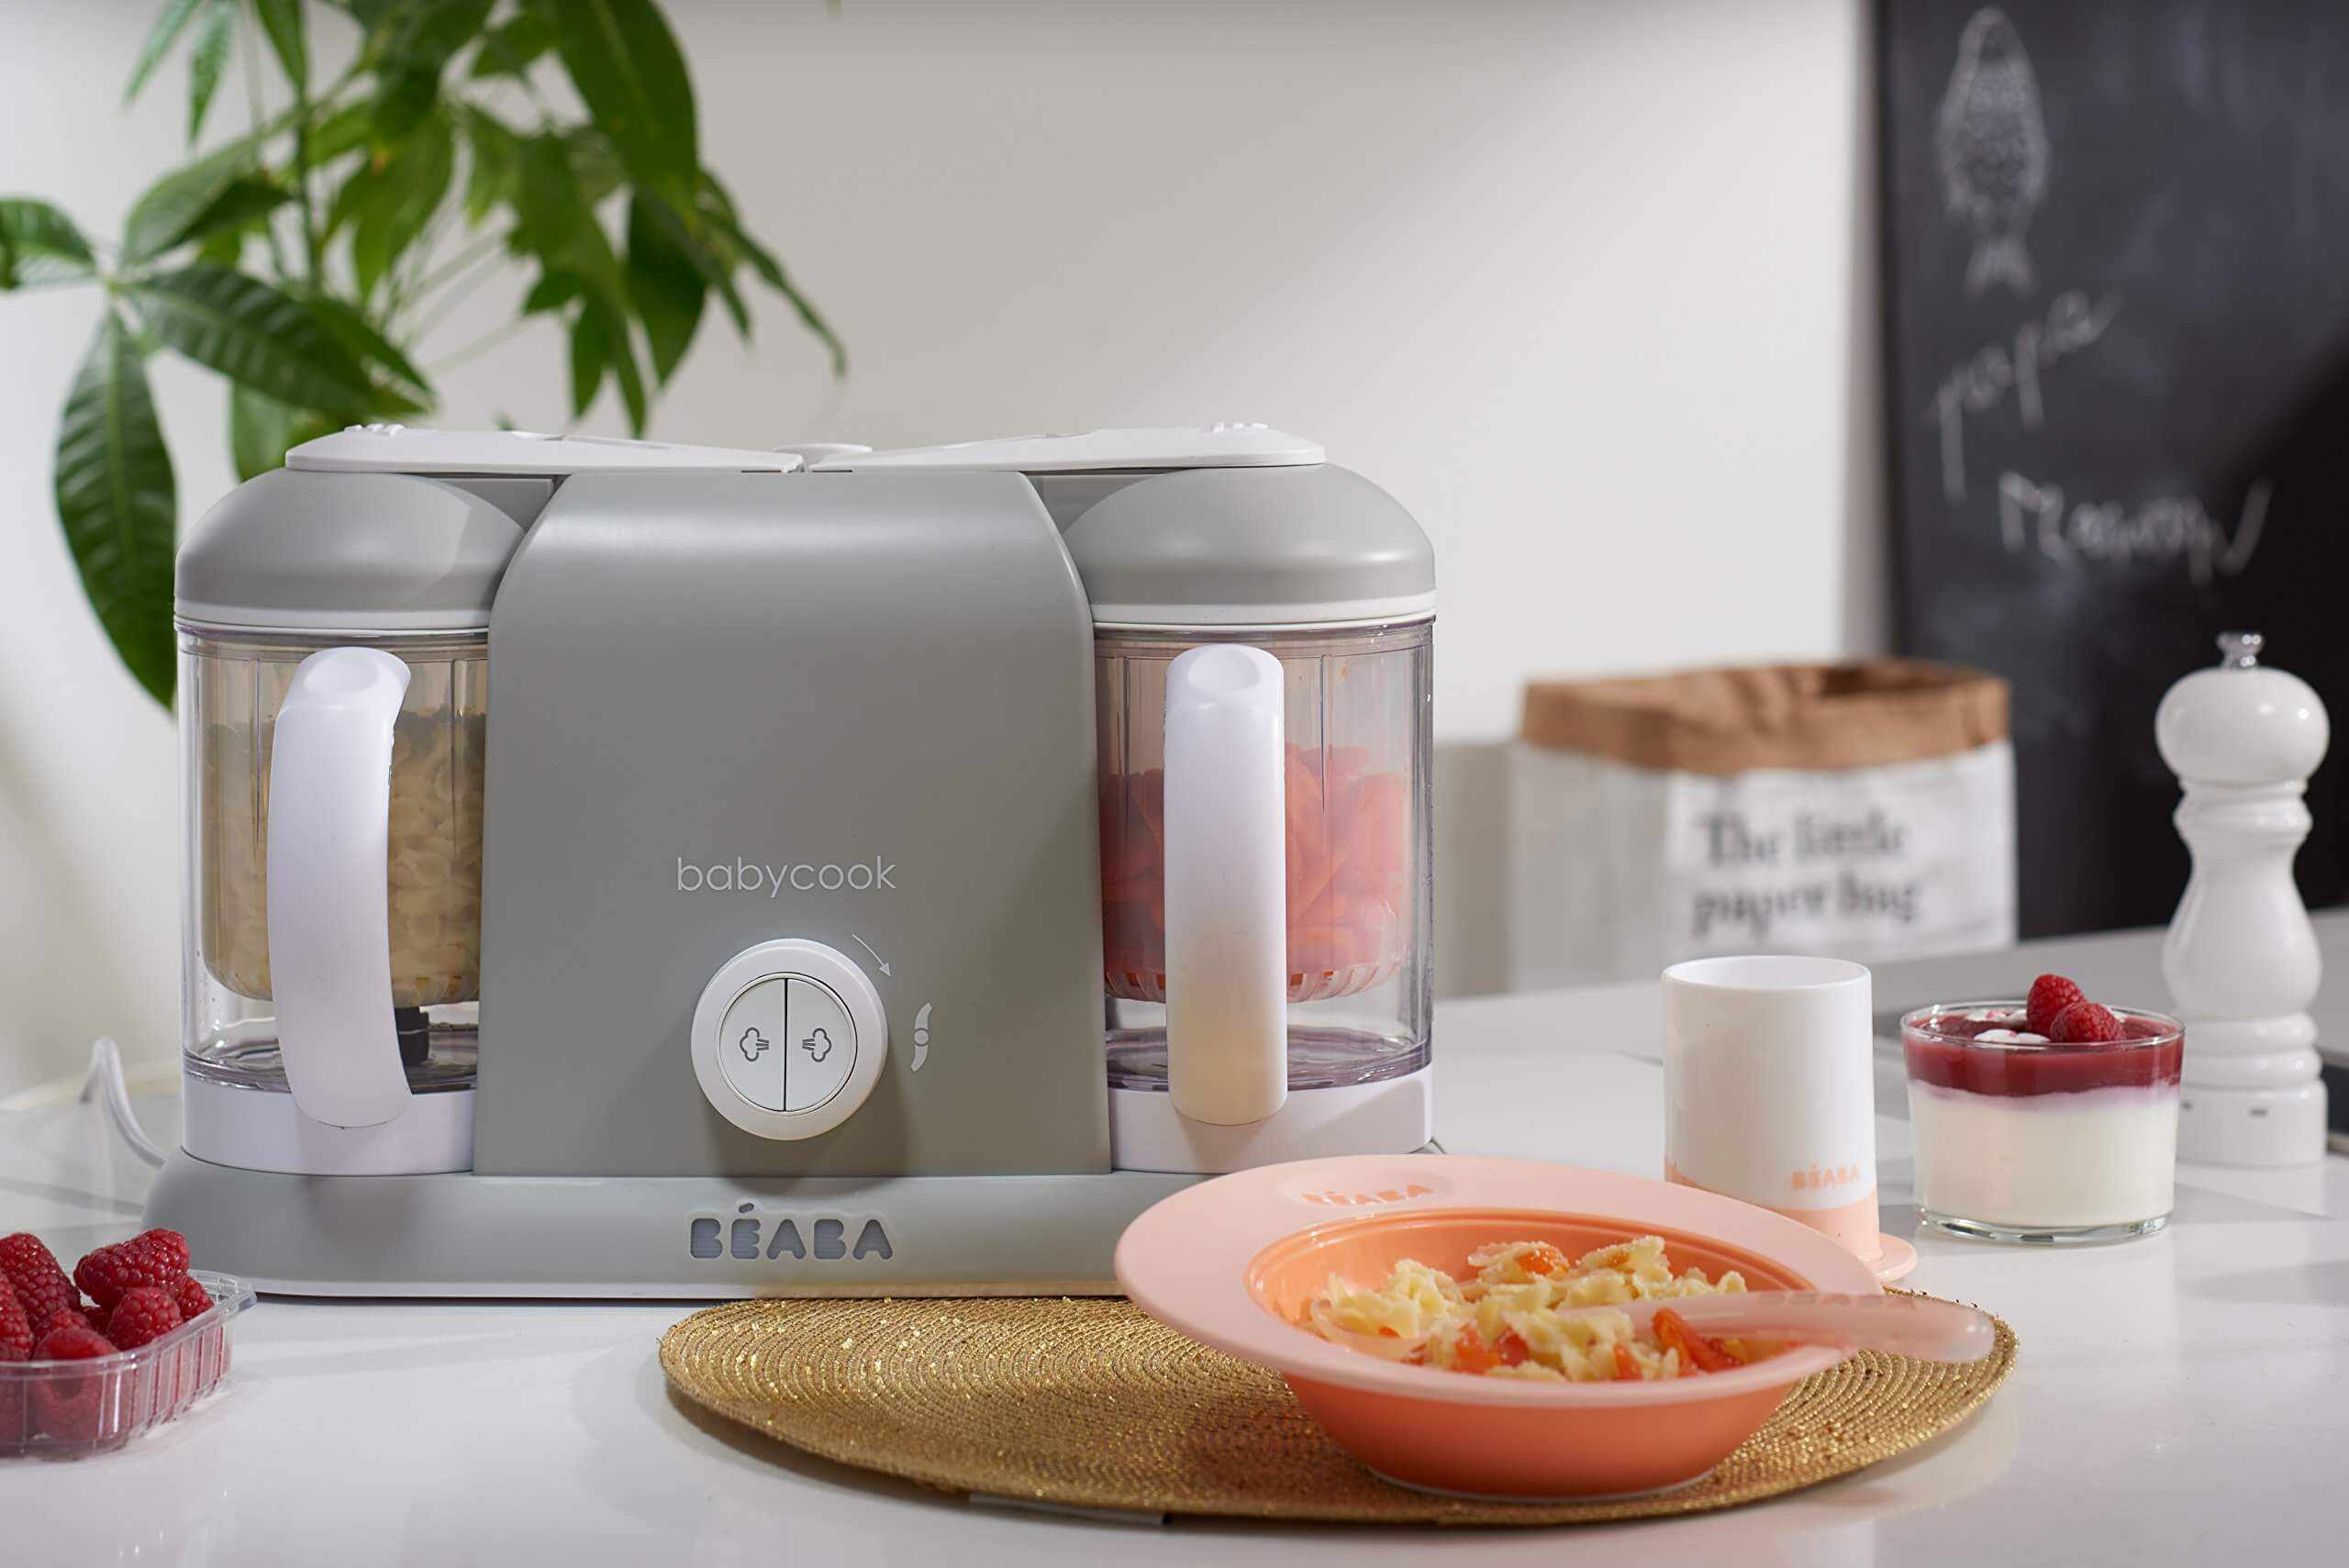 BEABA Babycook Plus 4 in 1 Steam Cooker and Blender, beaba baby food maker, beaba babycook original, Fresh, Healthy and Tasty Baby Food Making